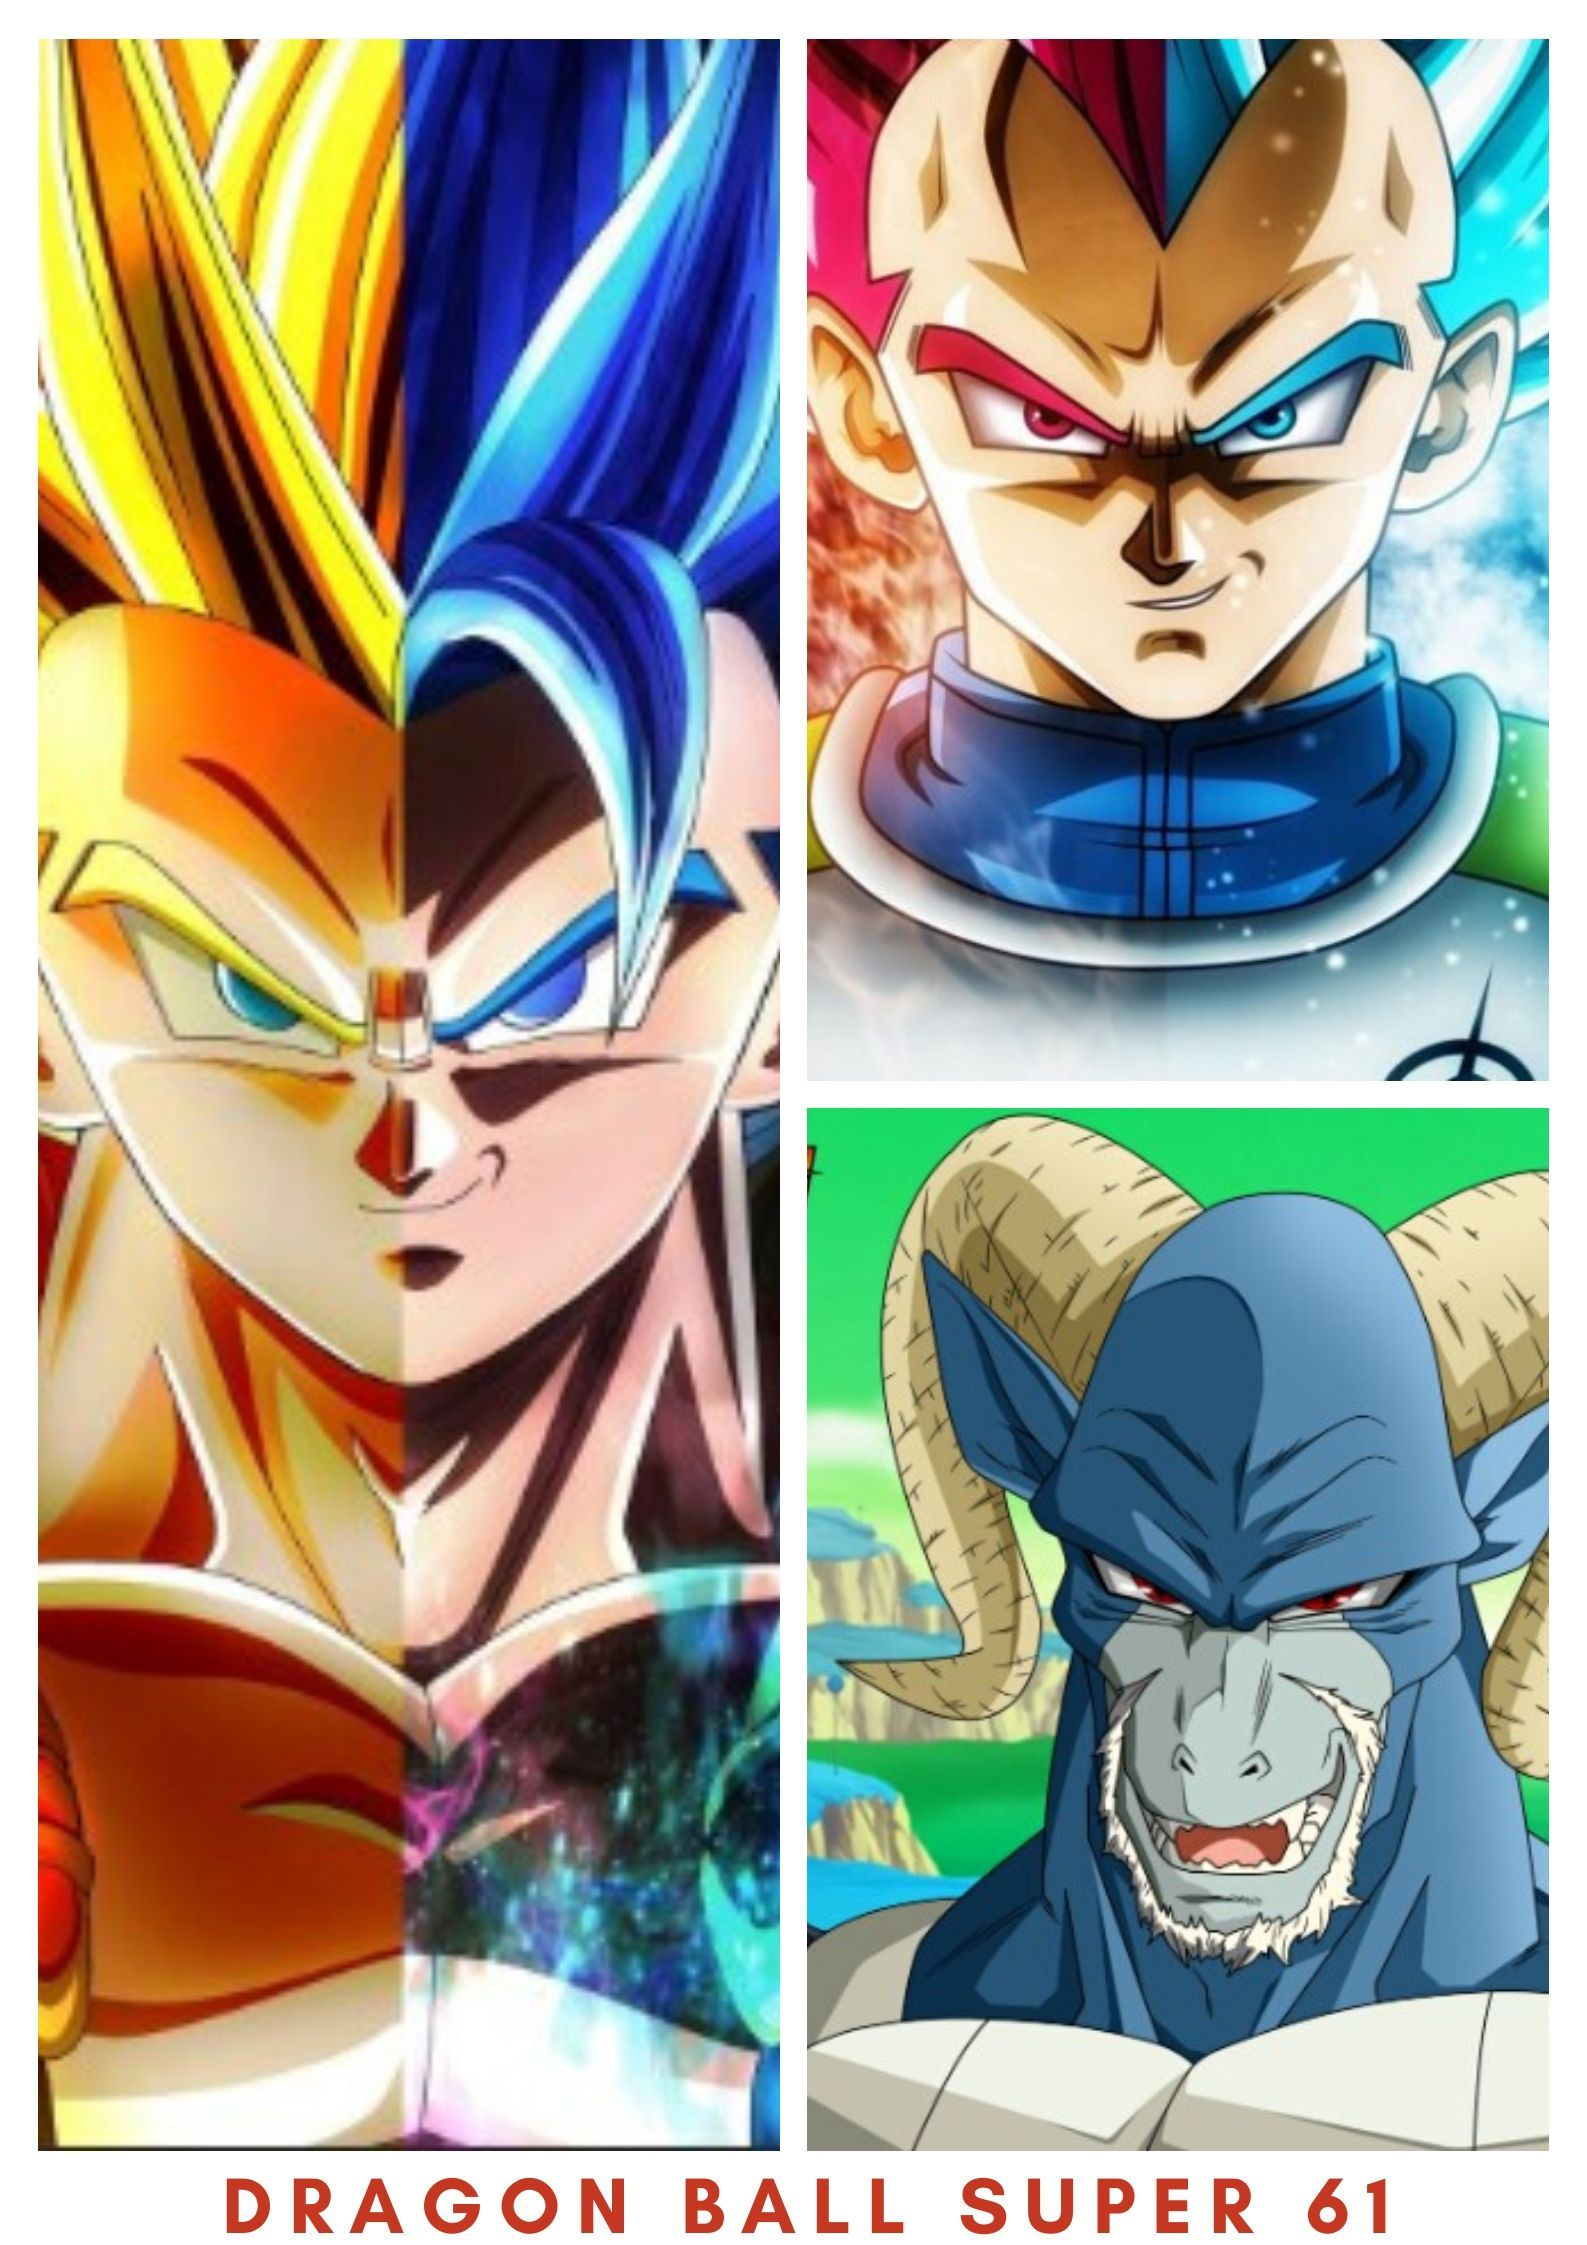 Dragon Ball Super Chapter 61 Release Date, spoilers in